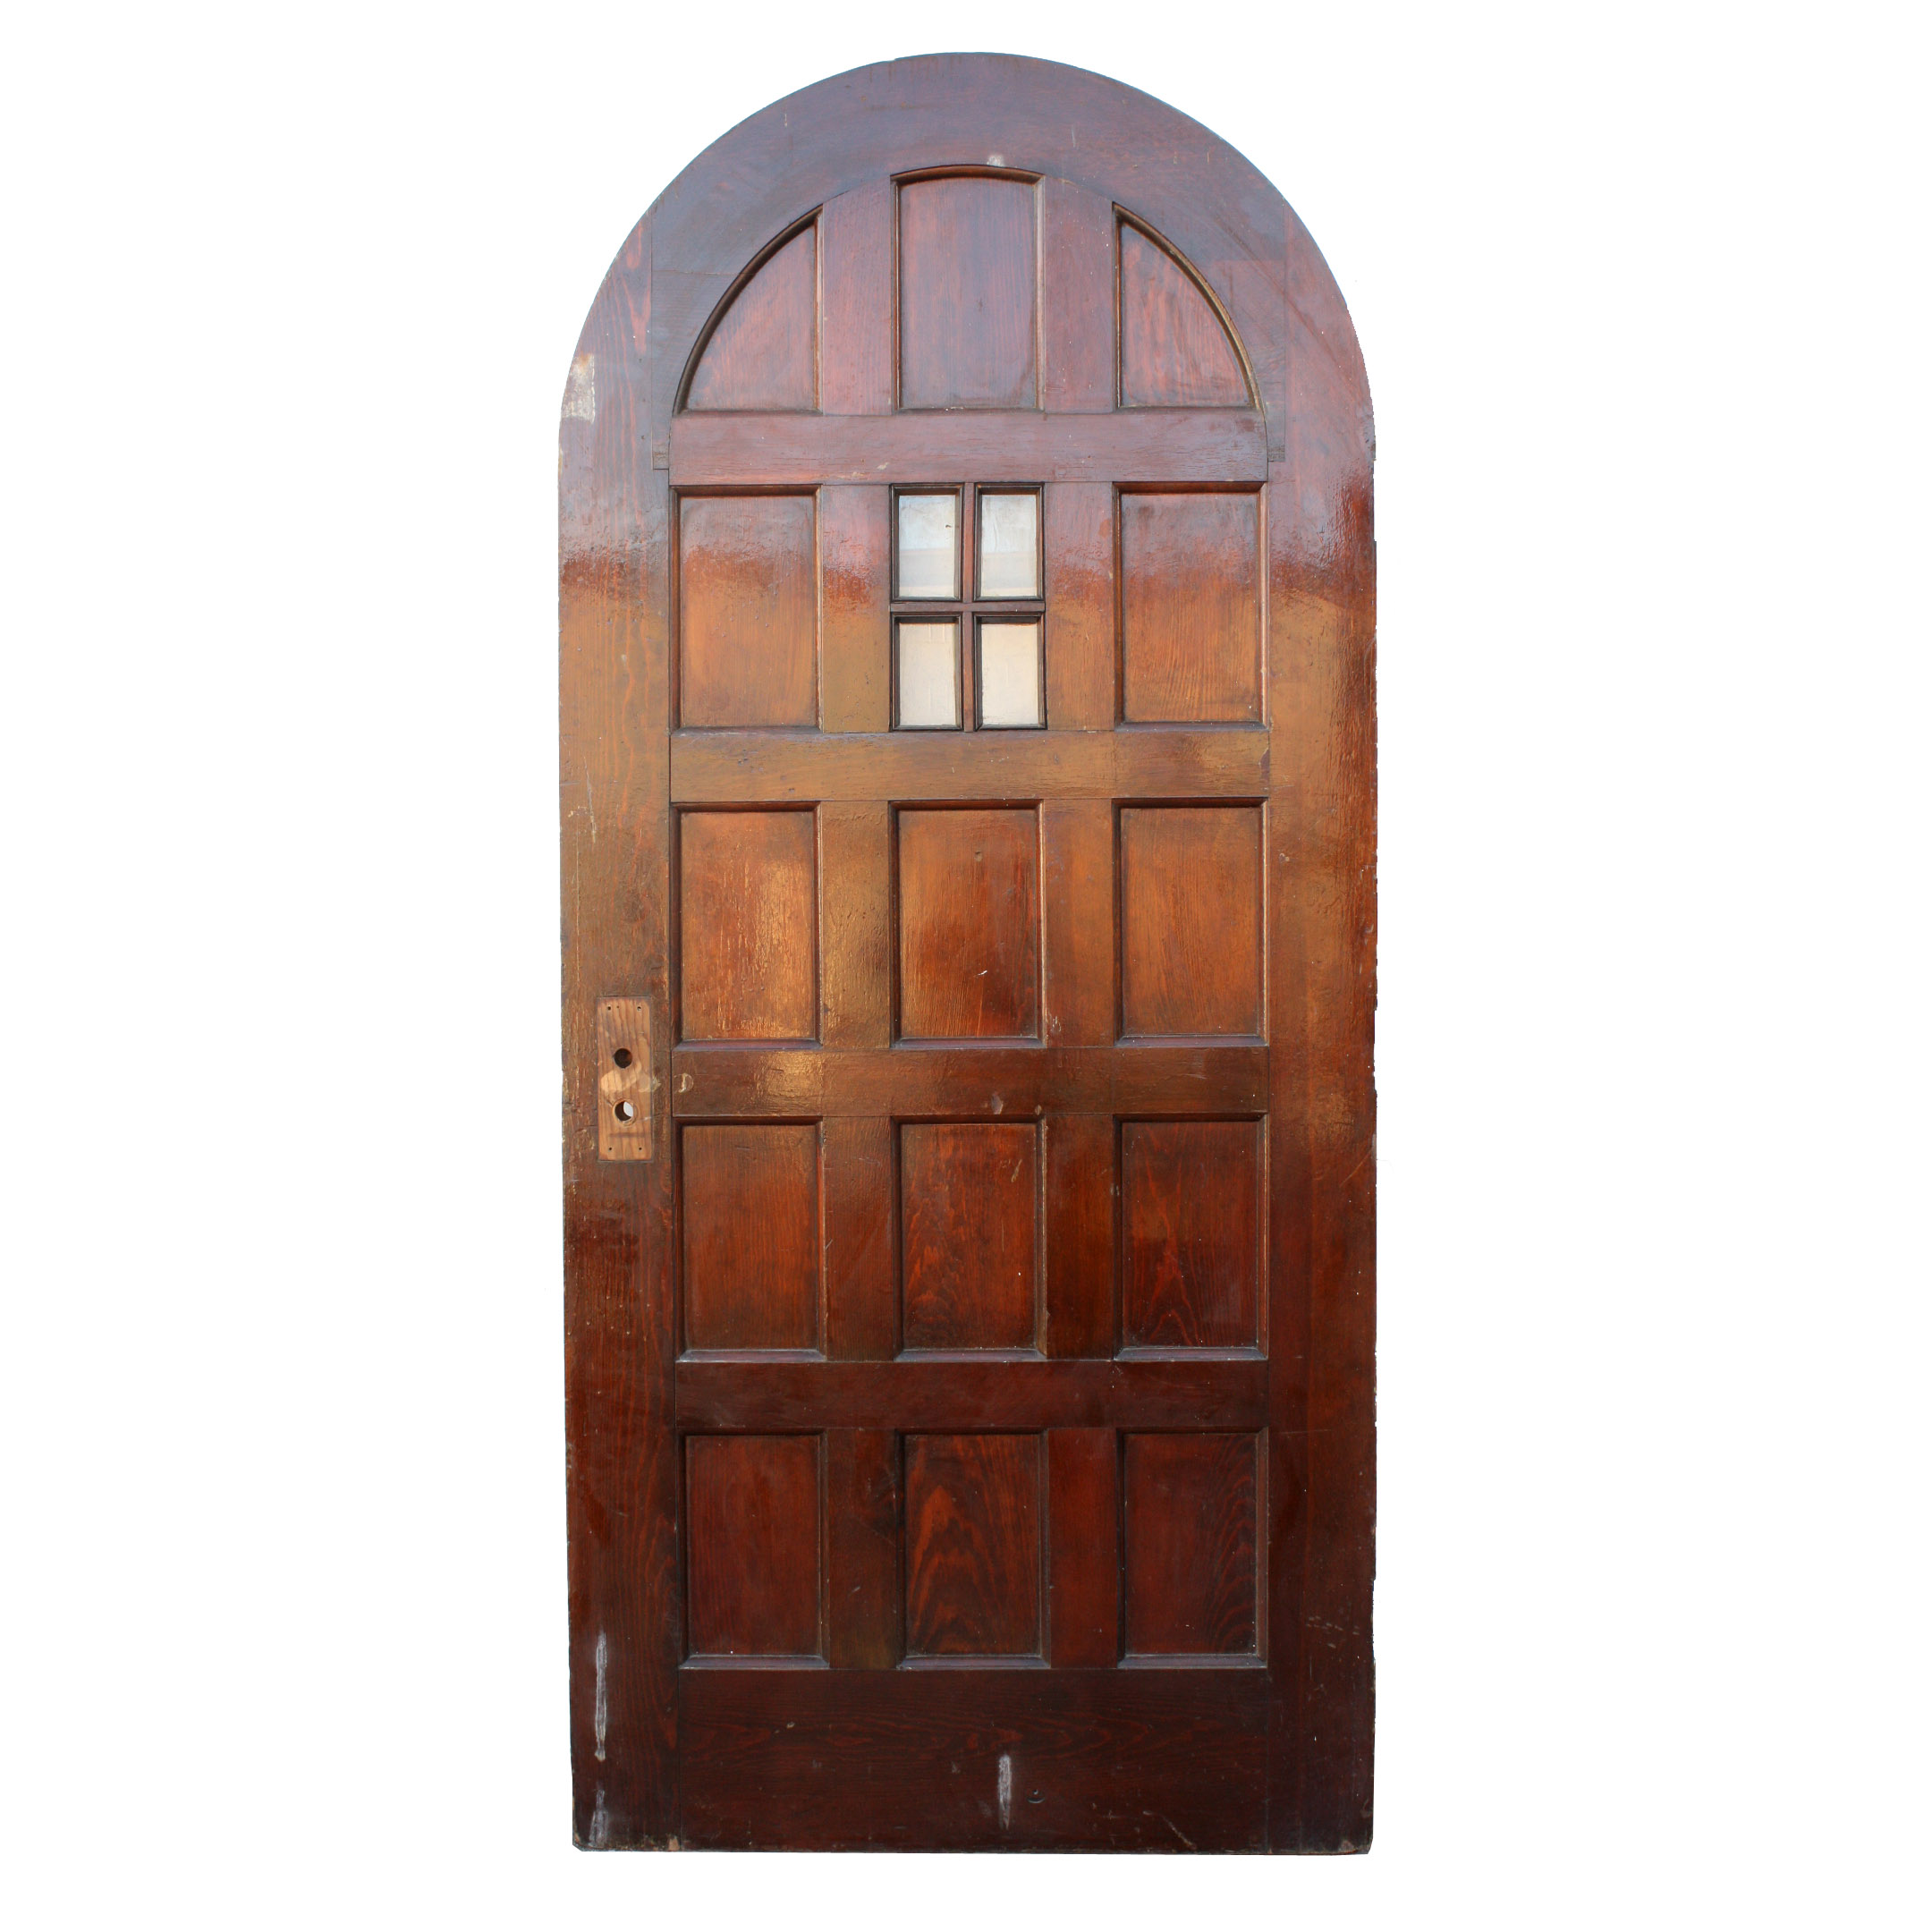 Salvaged paneled 36 front door with four pane window for Old wood doors salvaged